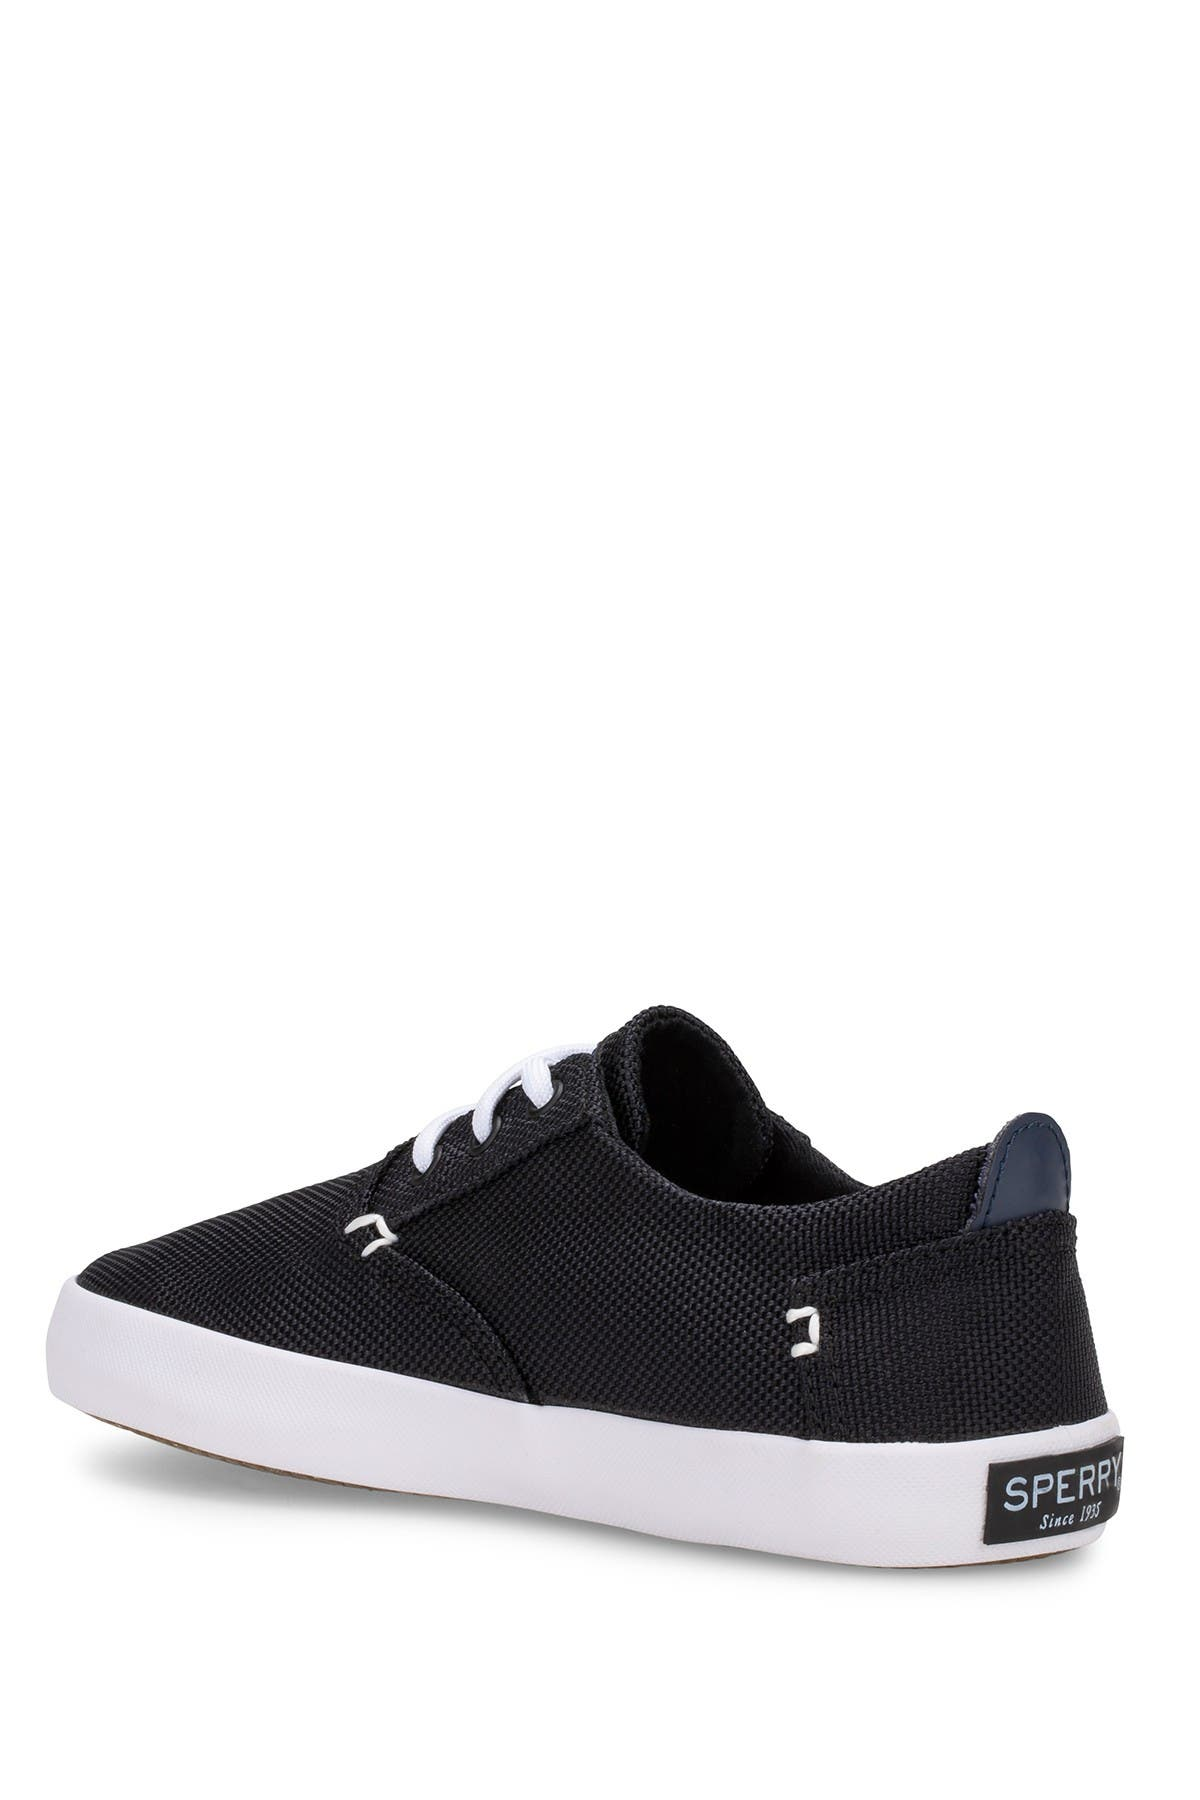 Sperry Bodie Washable Lace-Up Sneaker